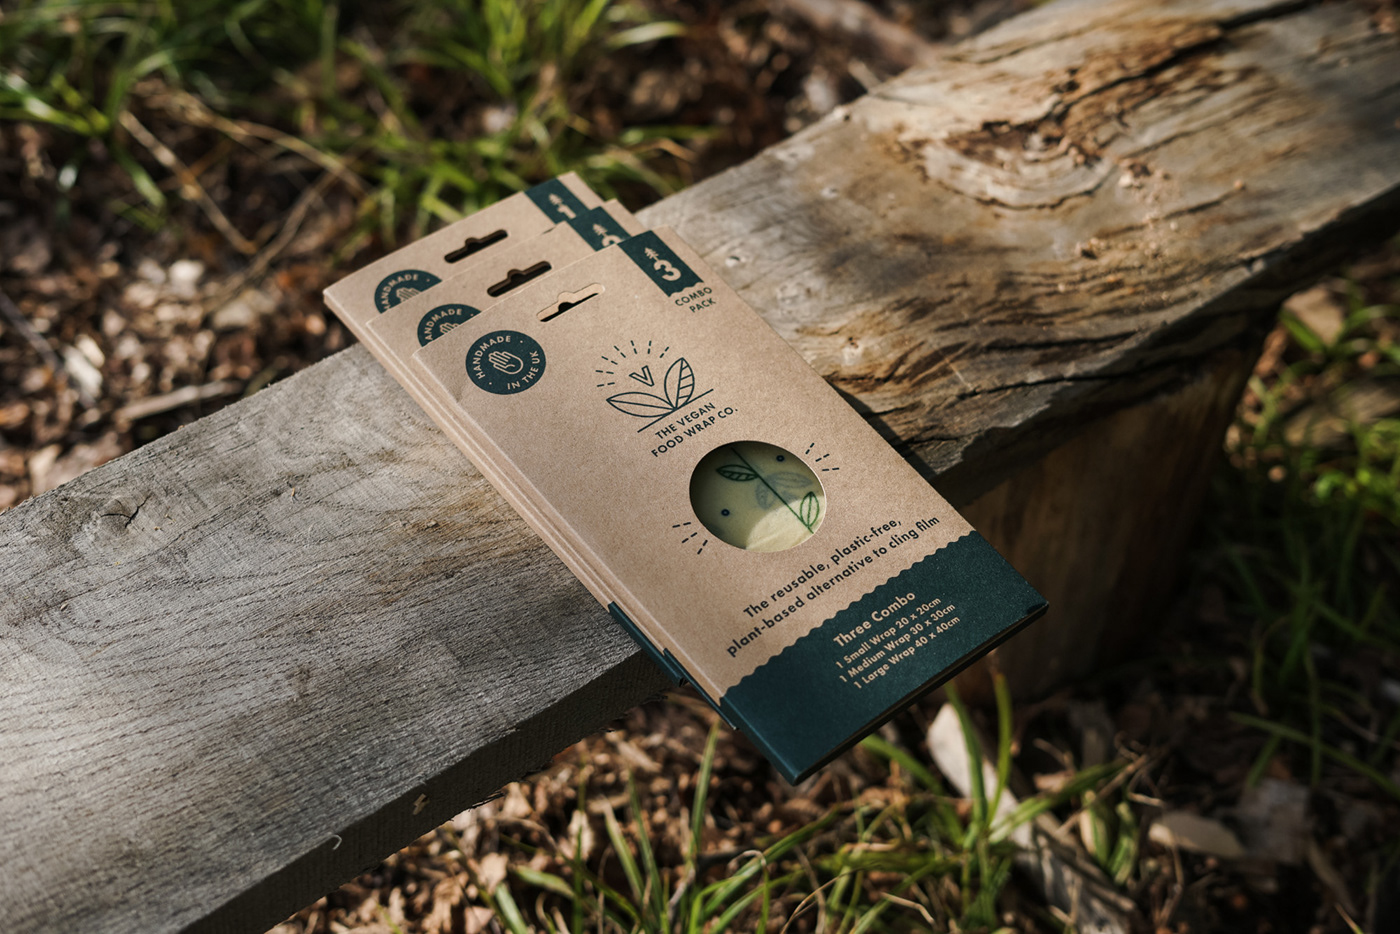 branding  compostable environment Food  graphic design  Nature Packaging plastic free Sustainable vegan